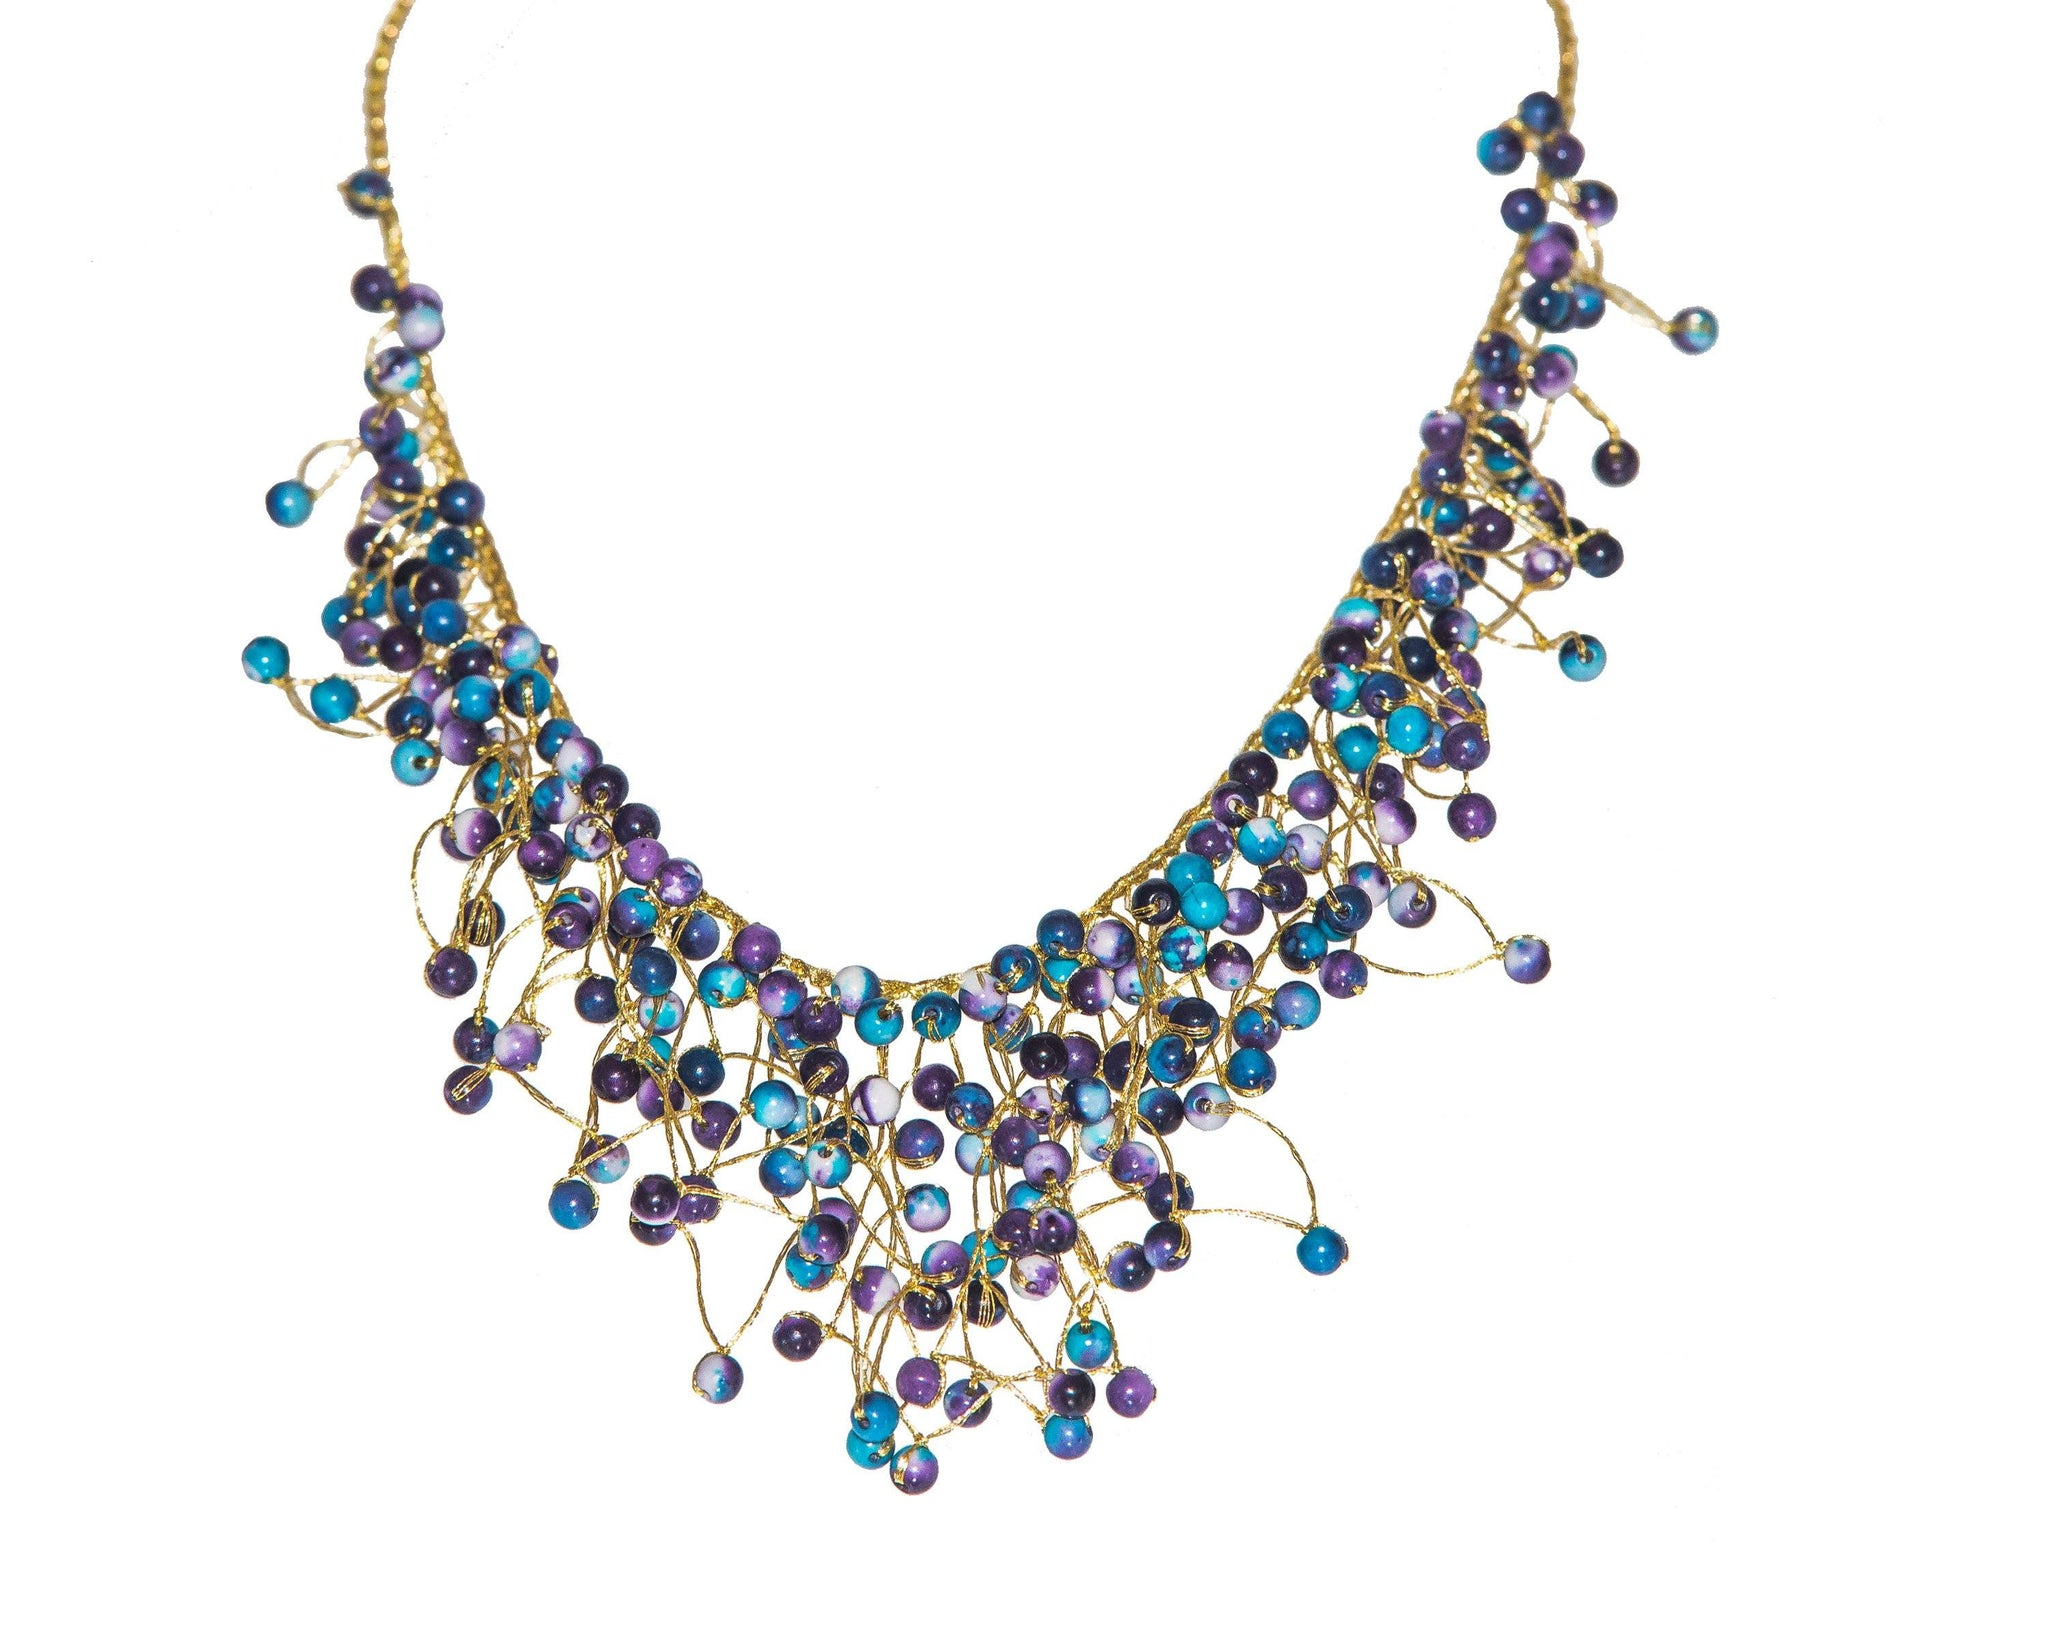 Necklace Metalic Yarn with Stone Crystal and Stone Bead - CCCollections